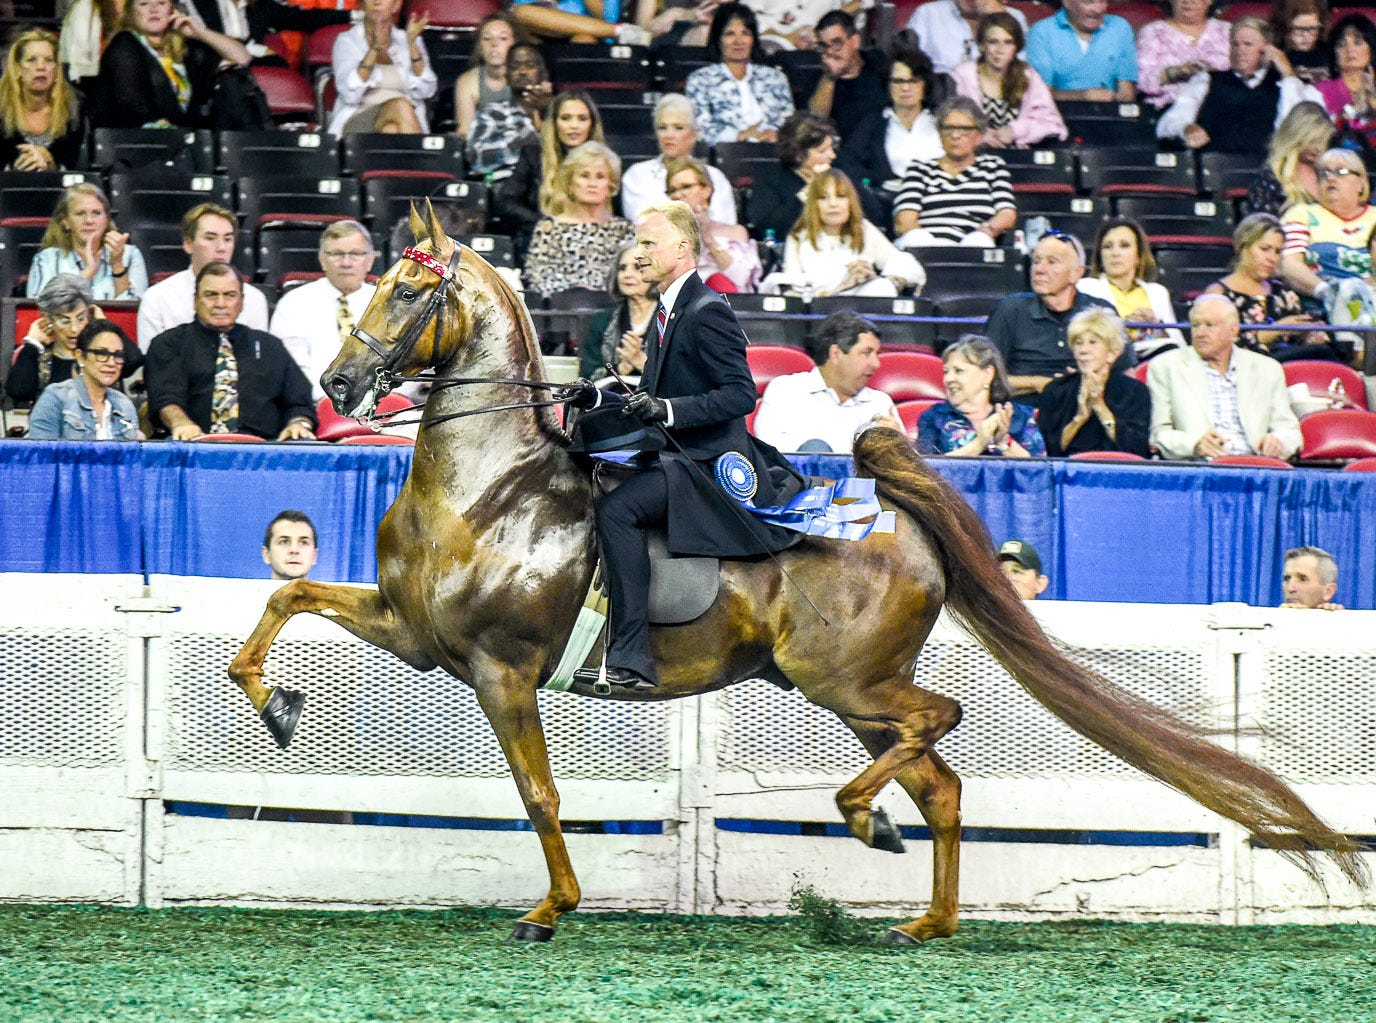 3 GAITED OVER 15.2 STAKE winner Tango's Token Kiss (124817G) (WGC, WC, RWGC) 2012 Tango's Parting Kiss (111171S) X CF Deny Me Not (135288M)1 Owner: Grace Arnold LLC Rancho Santa Fe, CA Breeder: Harrison Shiflet and/or Beverly Shiflet Exhibitor: Smith LillyTrainer: Smith Lilly